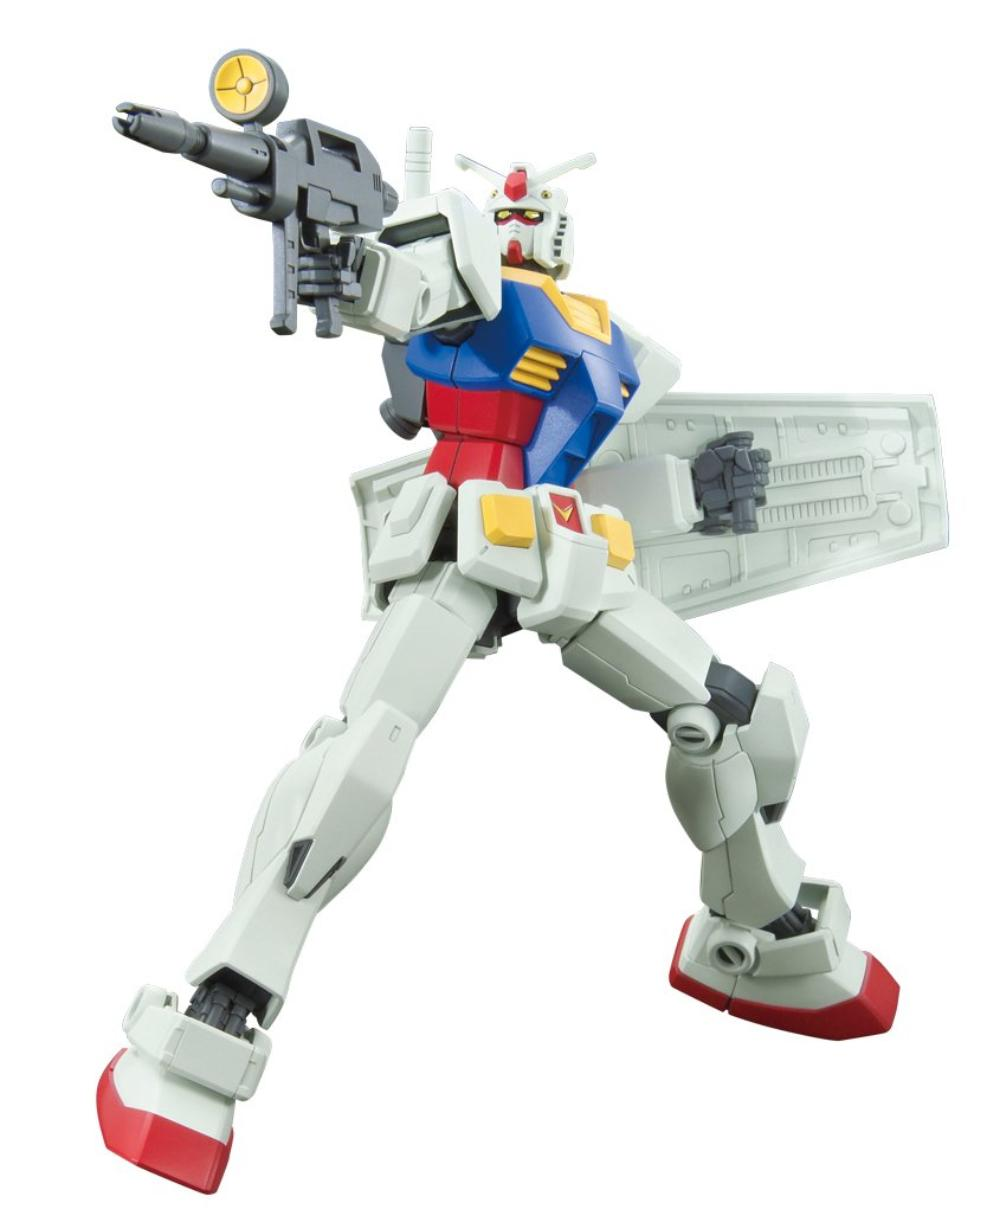 HGUC RX-78-2 Gundam Revive Model Kit, 1 144 Scale, N A By Bandai Hobby by